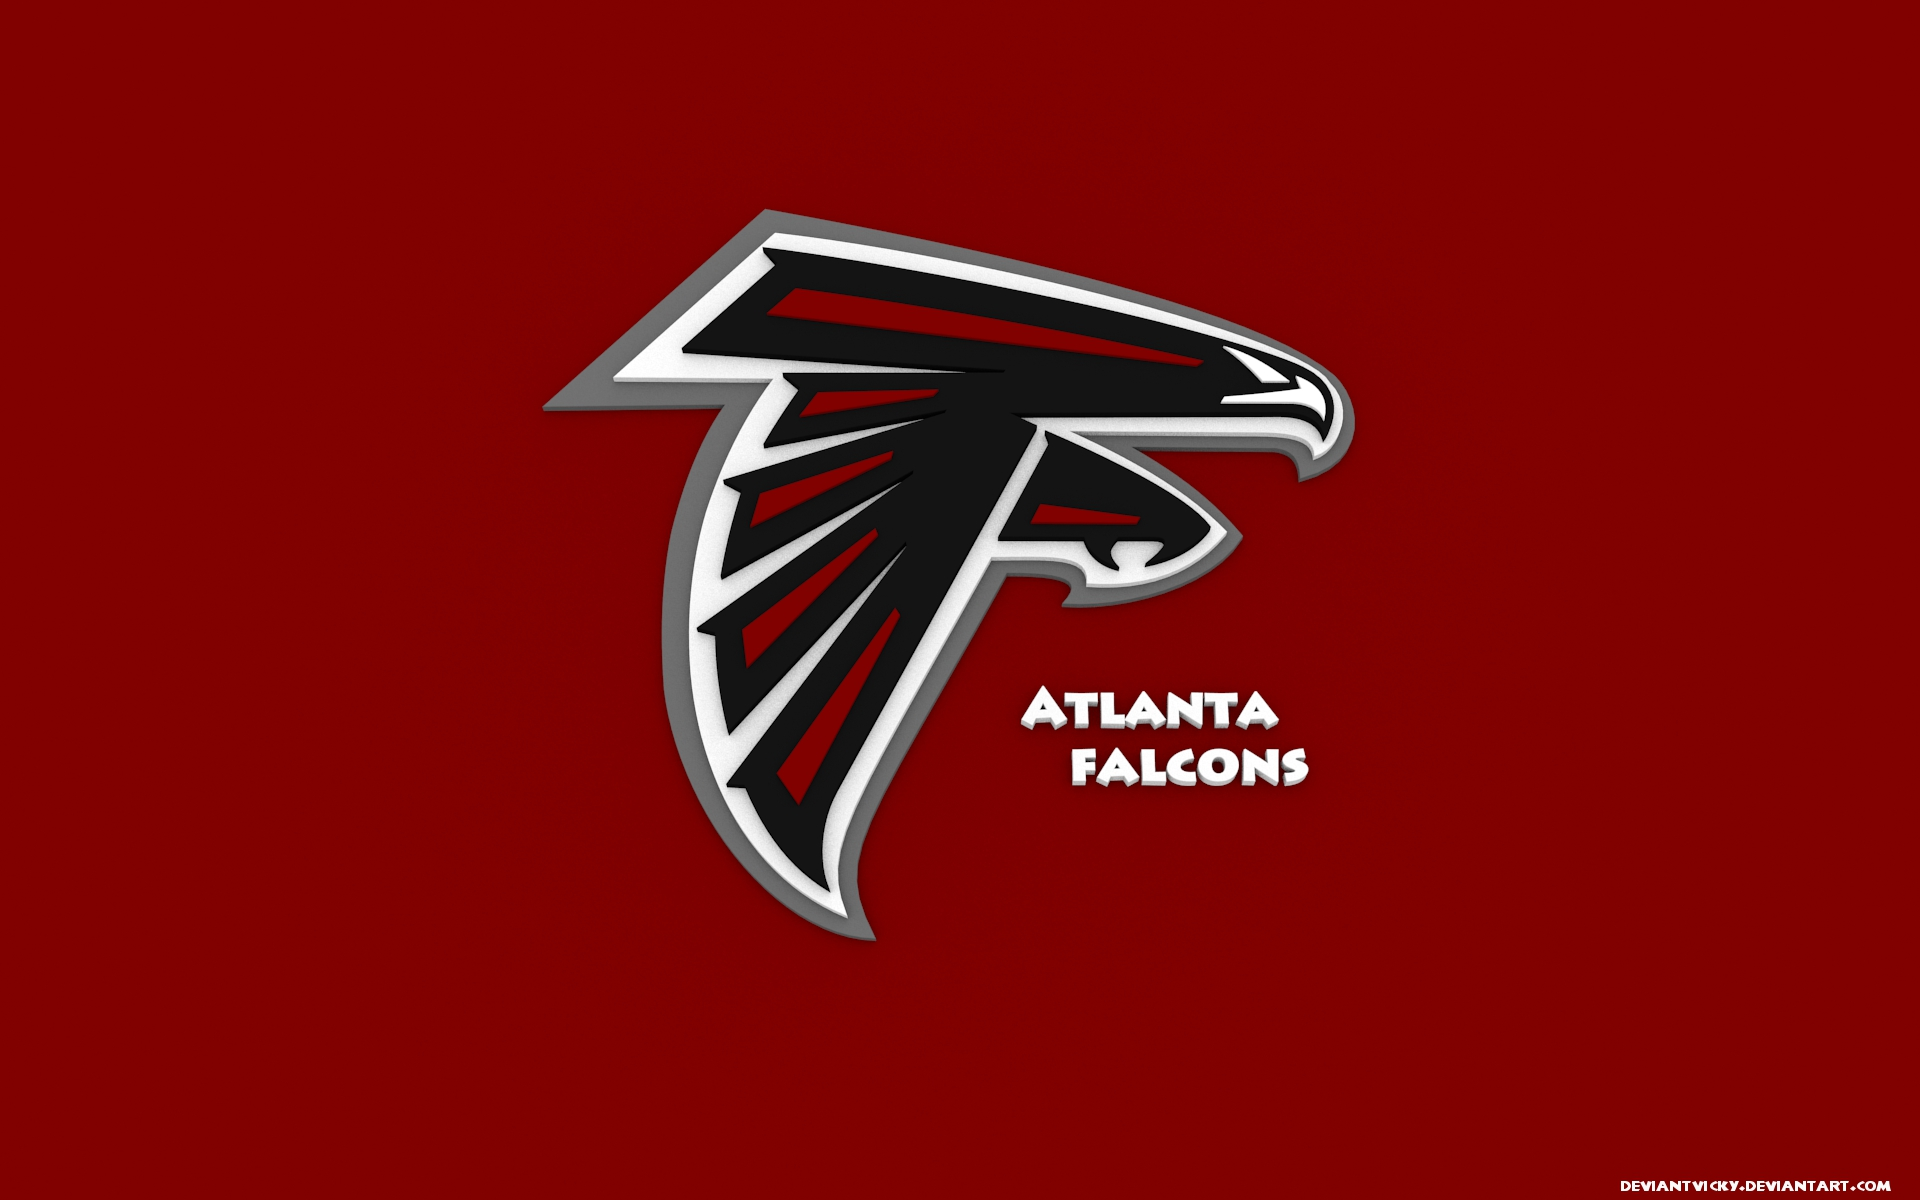 atlanta_falcons_wallpaper_by_deviantvicky-d4b3avy.jpg